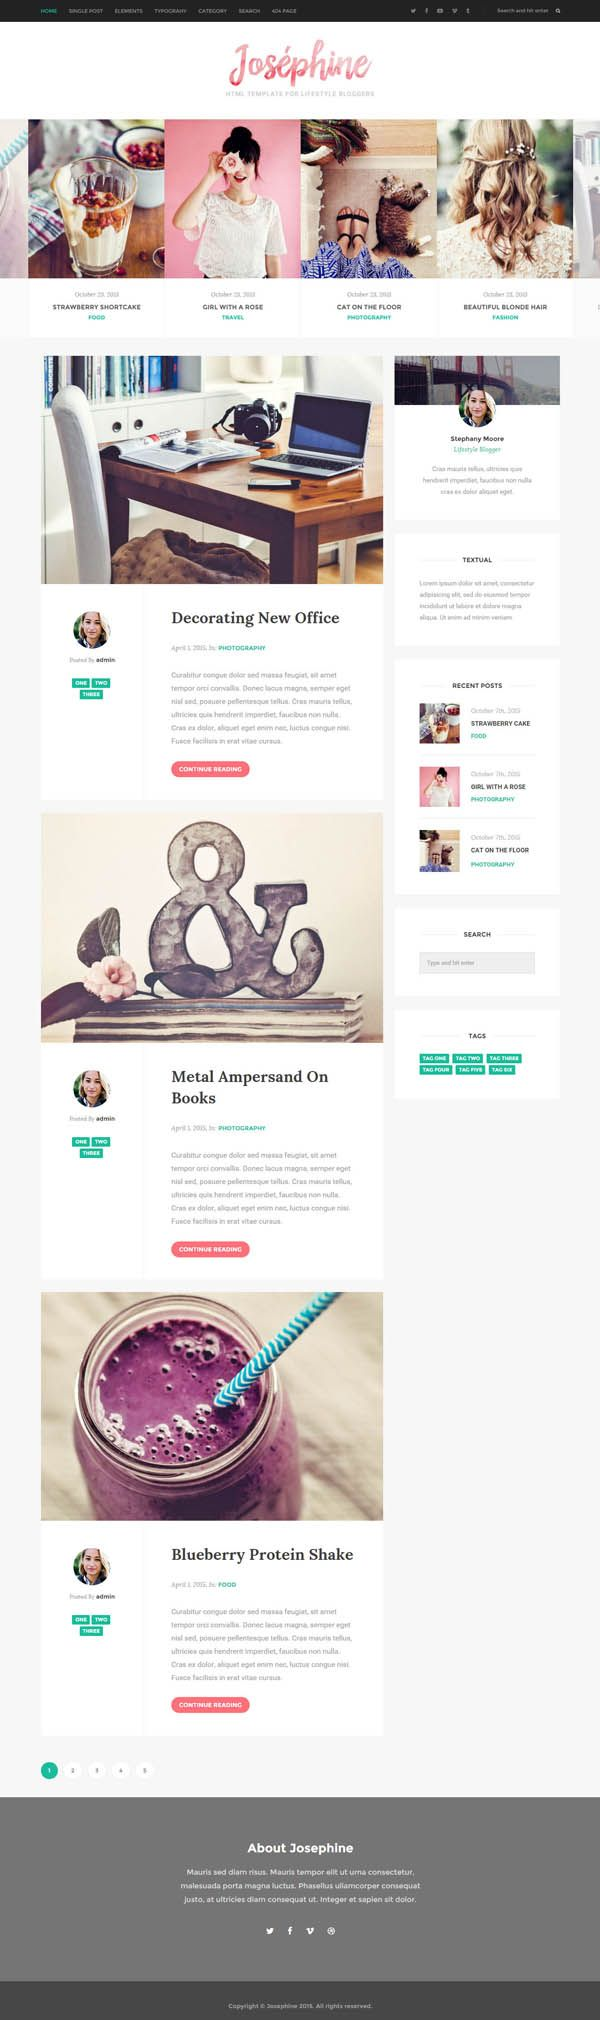 13 best images about blog on Pinterest   Lifestyle, Email ...